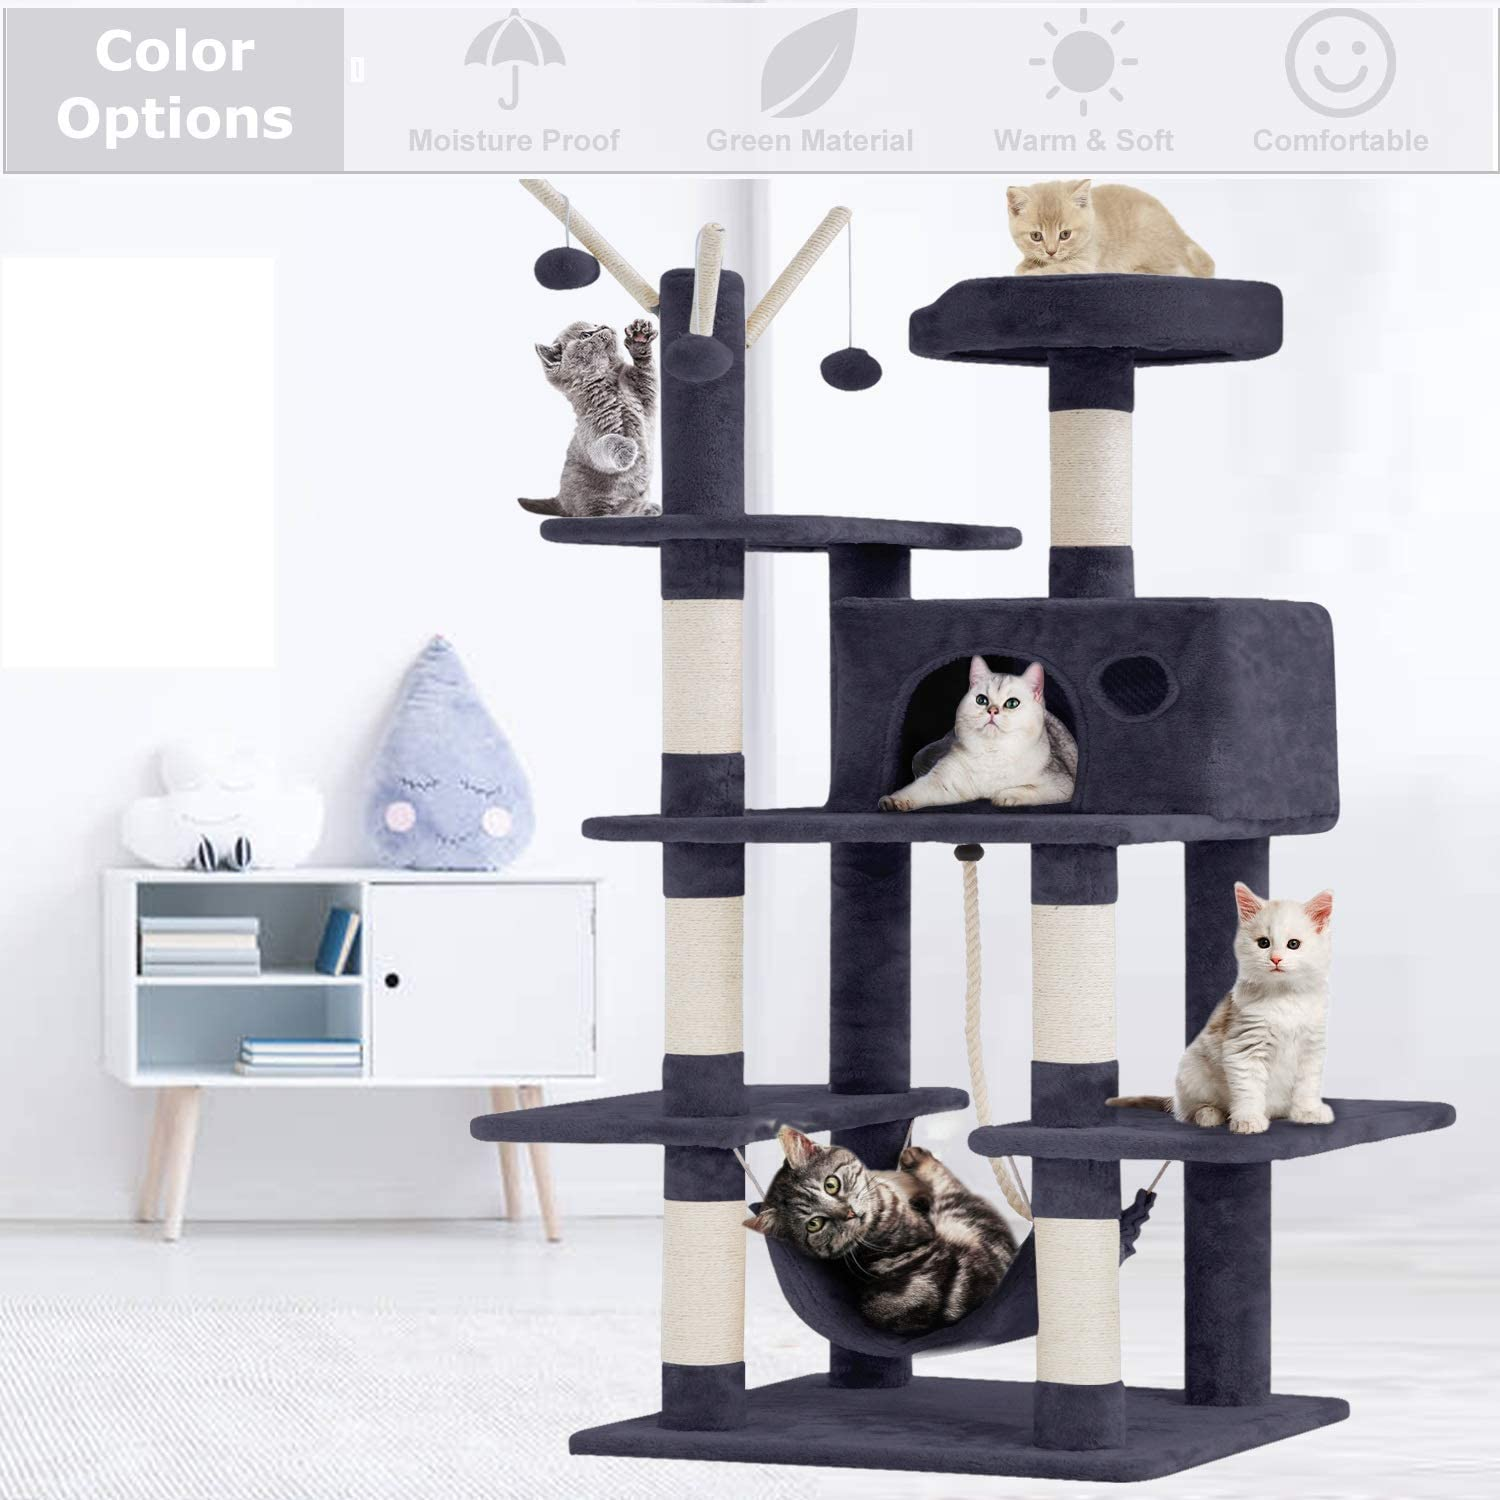 Lucky Shop Cat Tree Cat Condos And Towers With Scratching Post Cat Hammock Cat Condo House Cat Tree House 56 Inches Modern Cat Tower Cat Activity Tree Condo Playground For